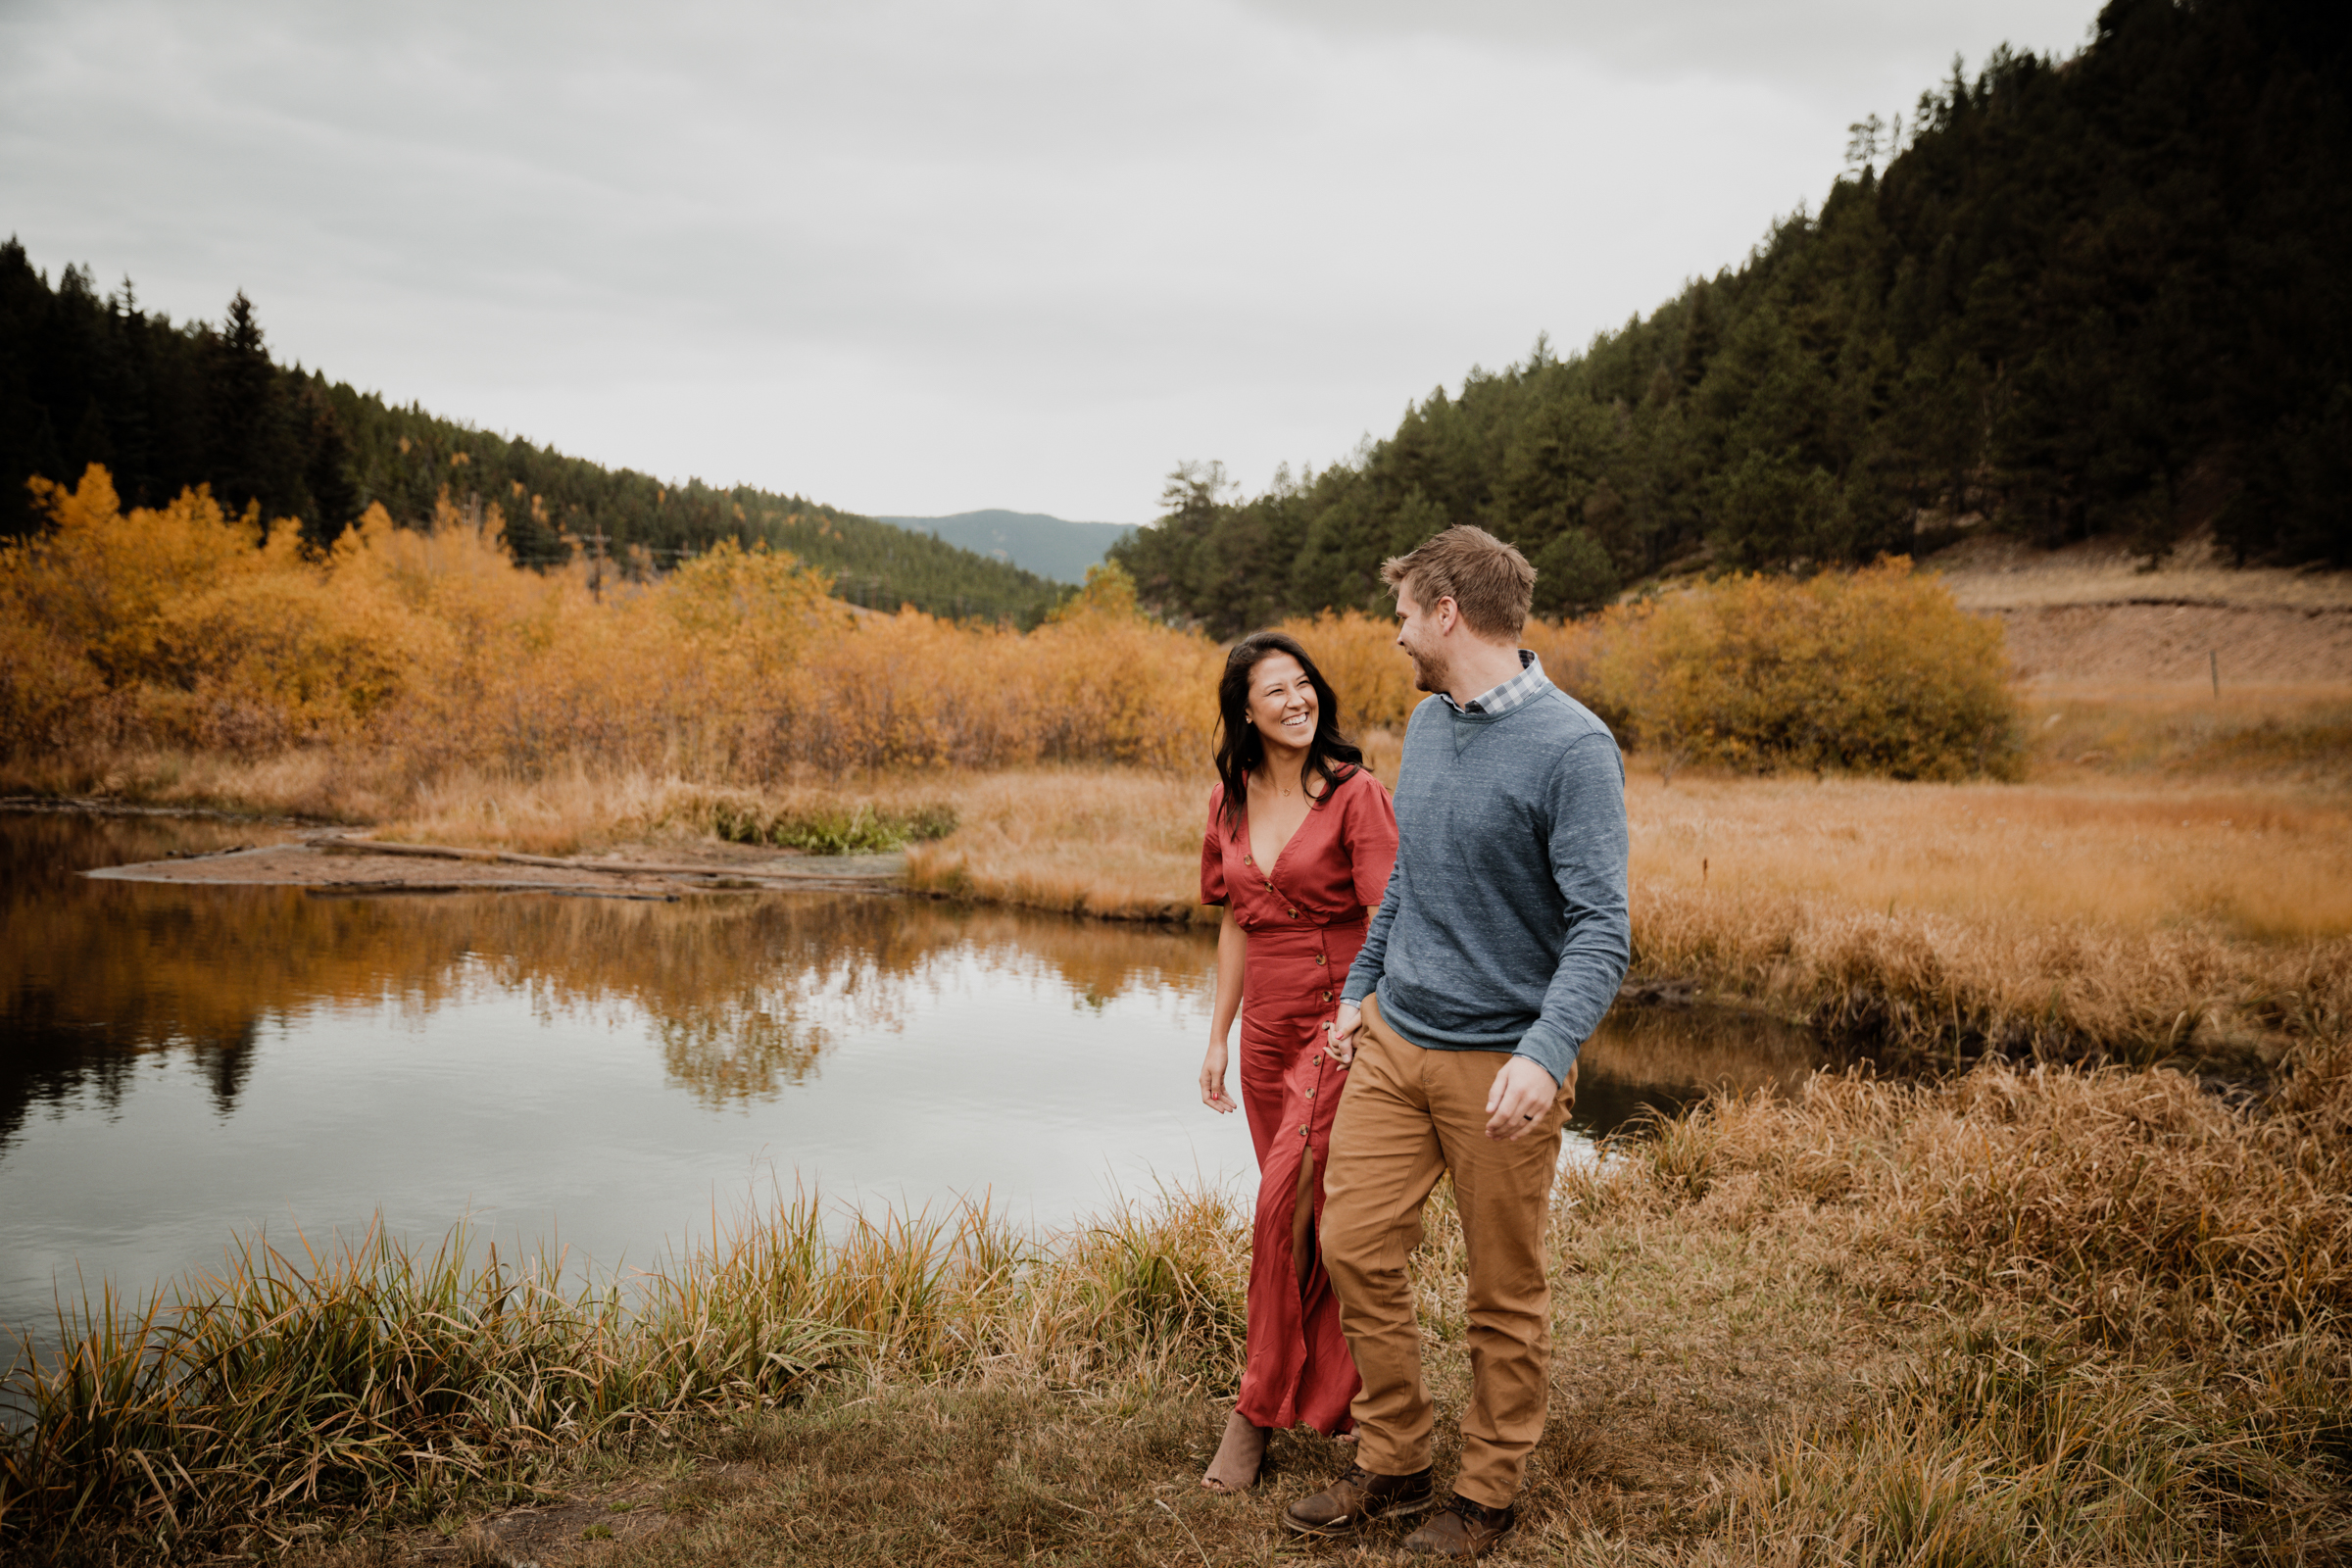 Mandy+Mike.Engagement-couturecoloradosubmission-6.jpg